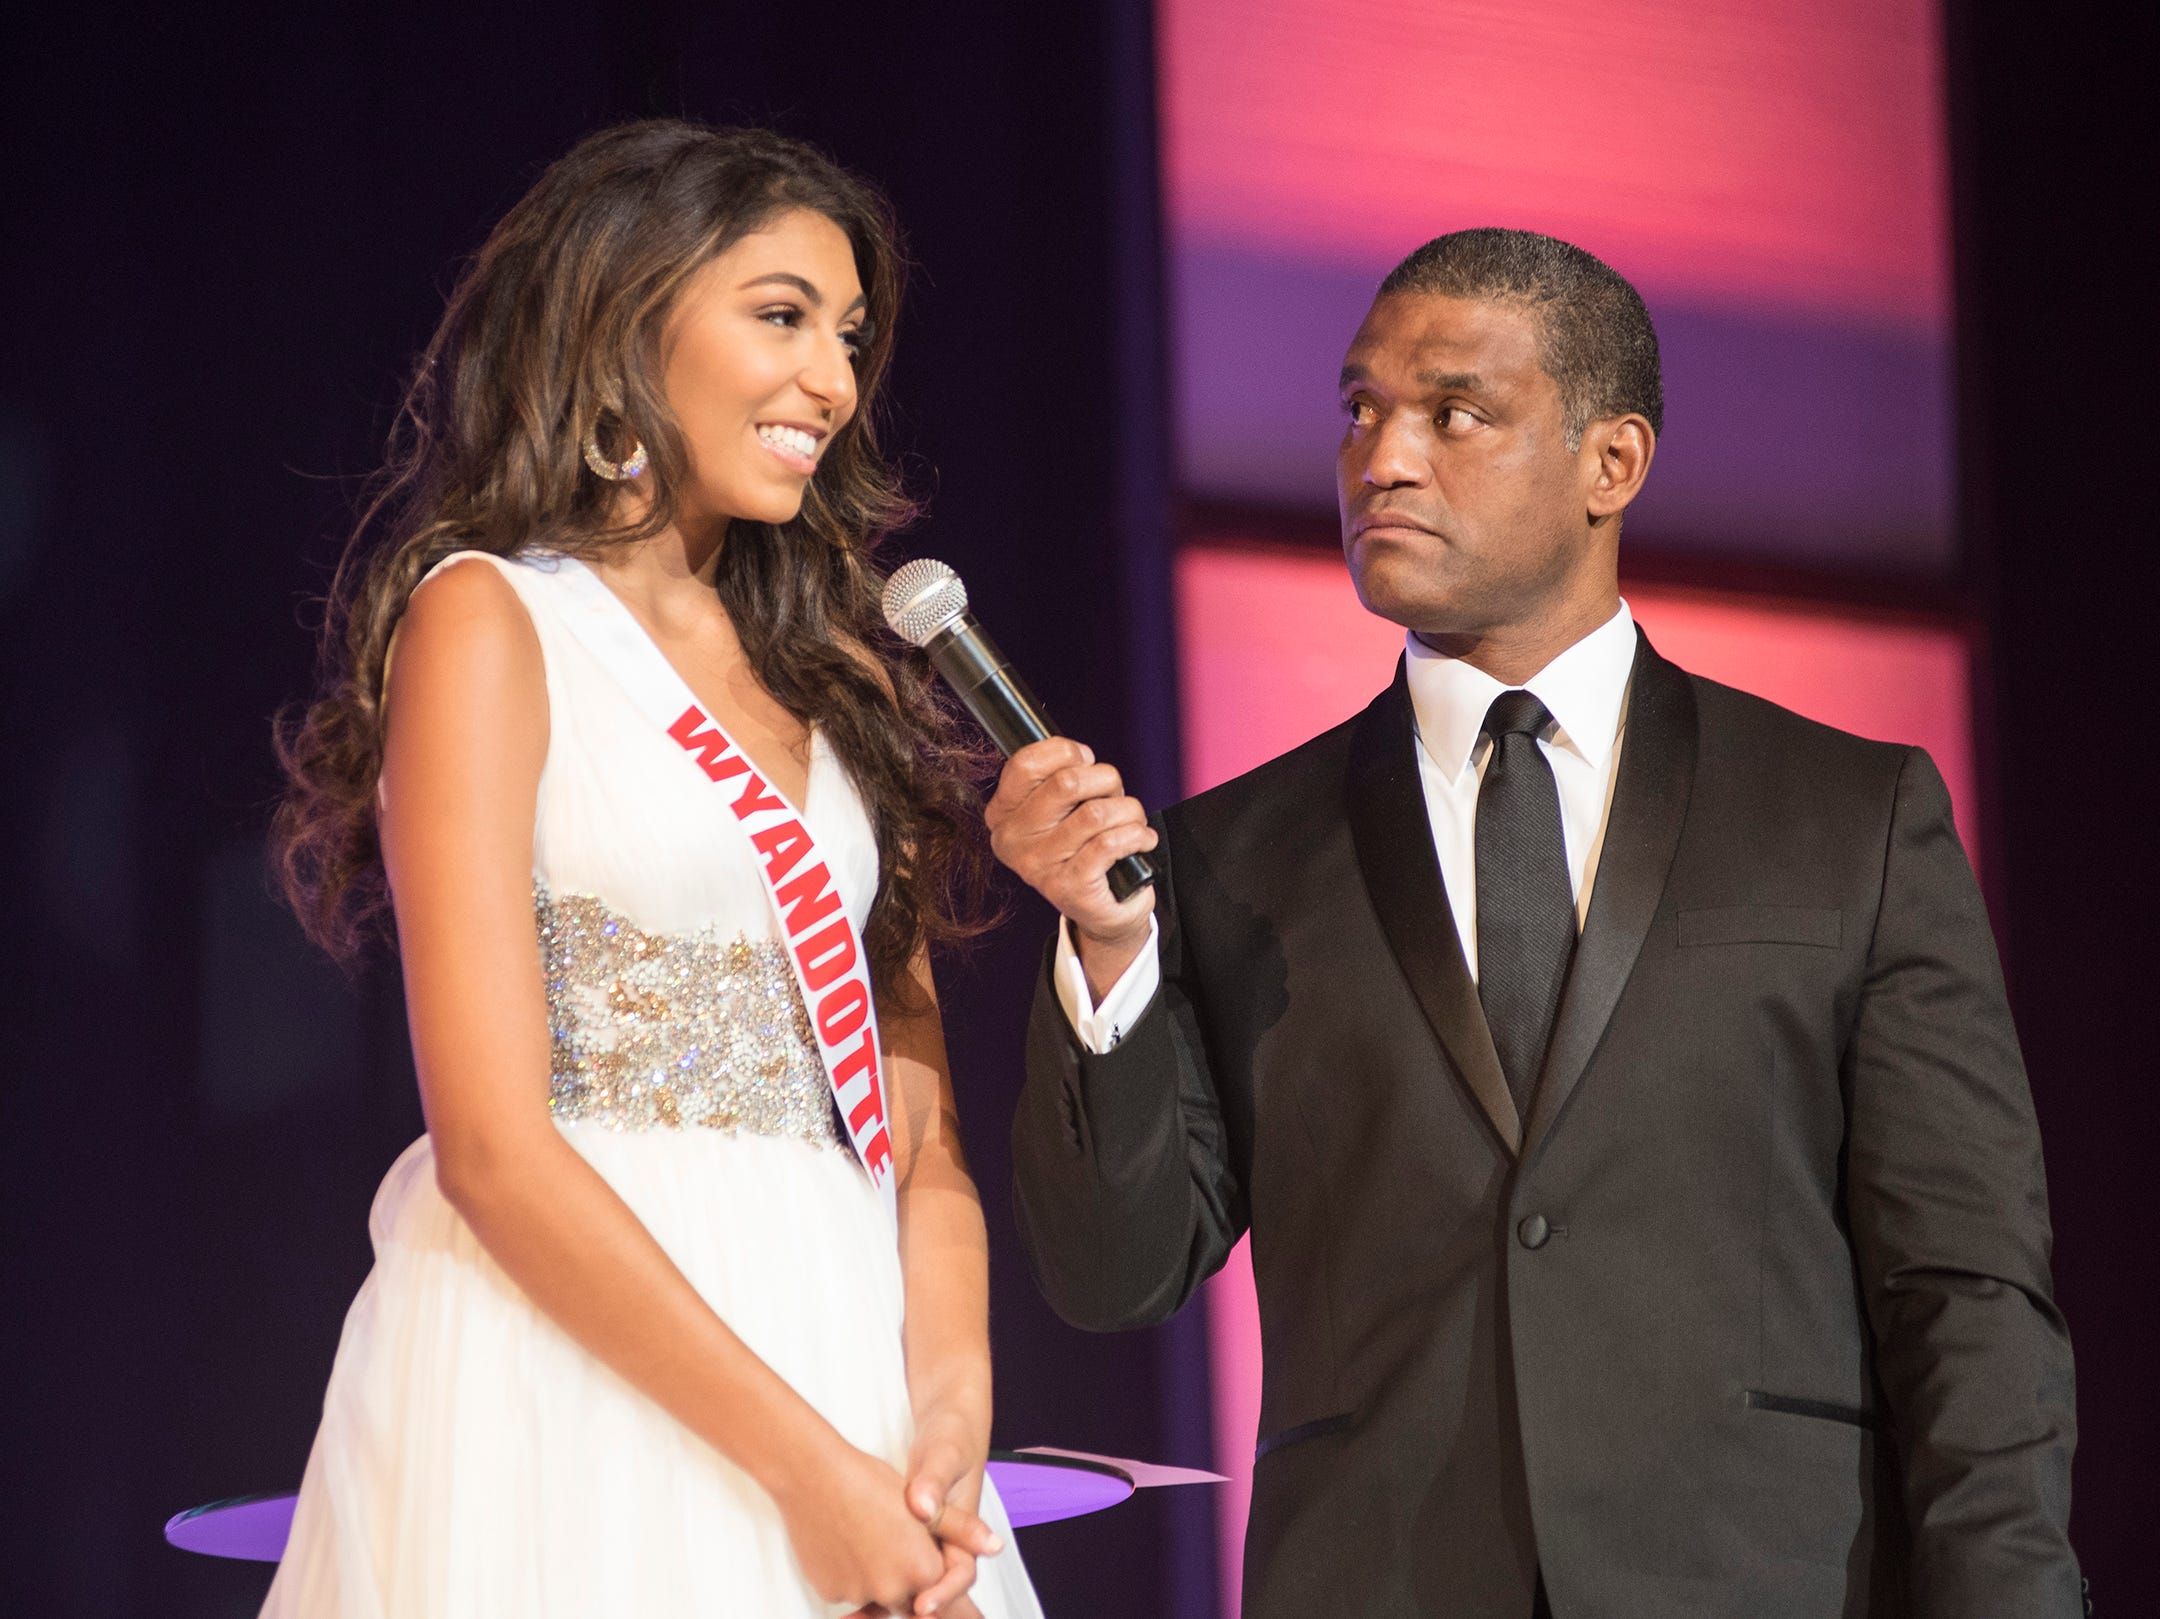 Miss Wyandotte Teen Alexis Fagan, left, is questioned by Cincinnati TV personality Rob Williams Saturday, Sept. 22, 2018 during the final round of the Miss Michigan Teen USA pageant at McMorran Theater.